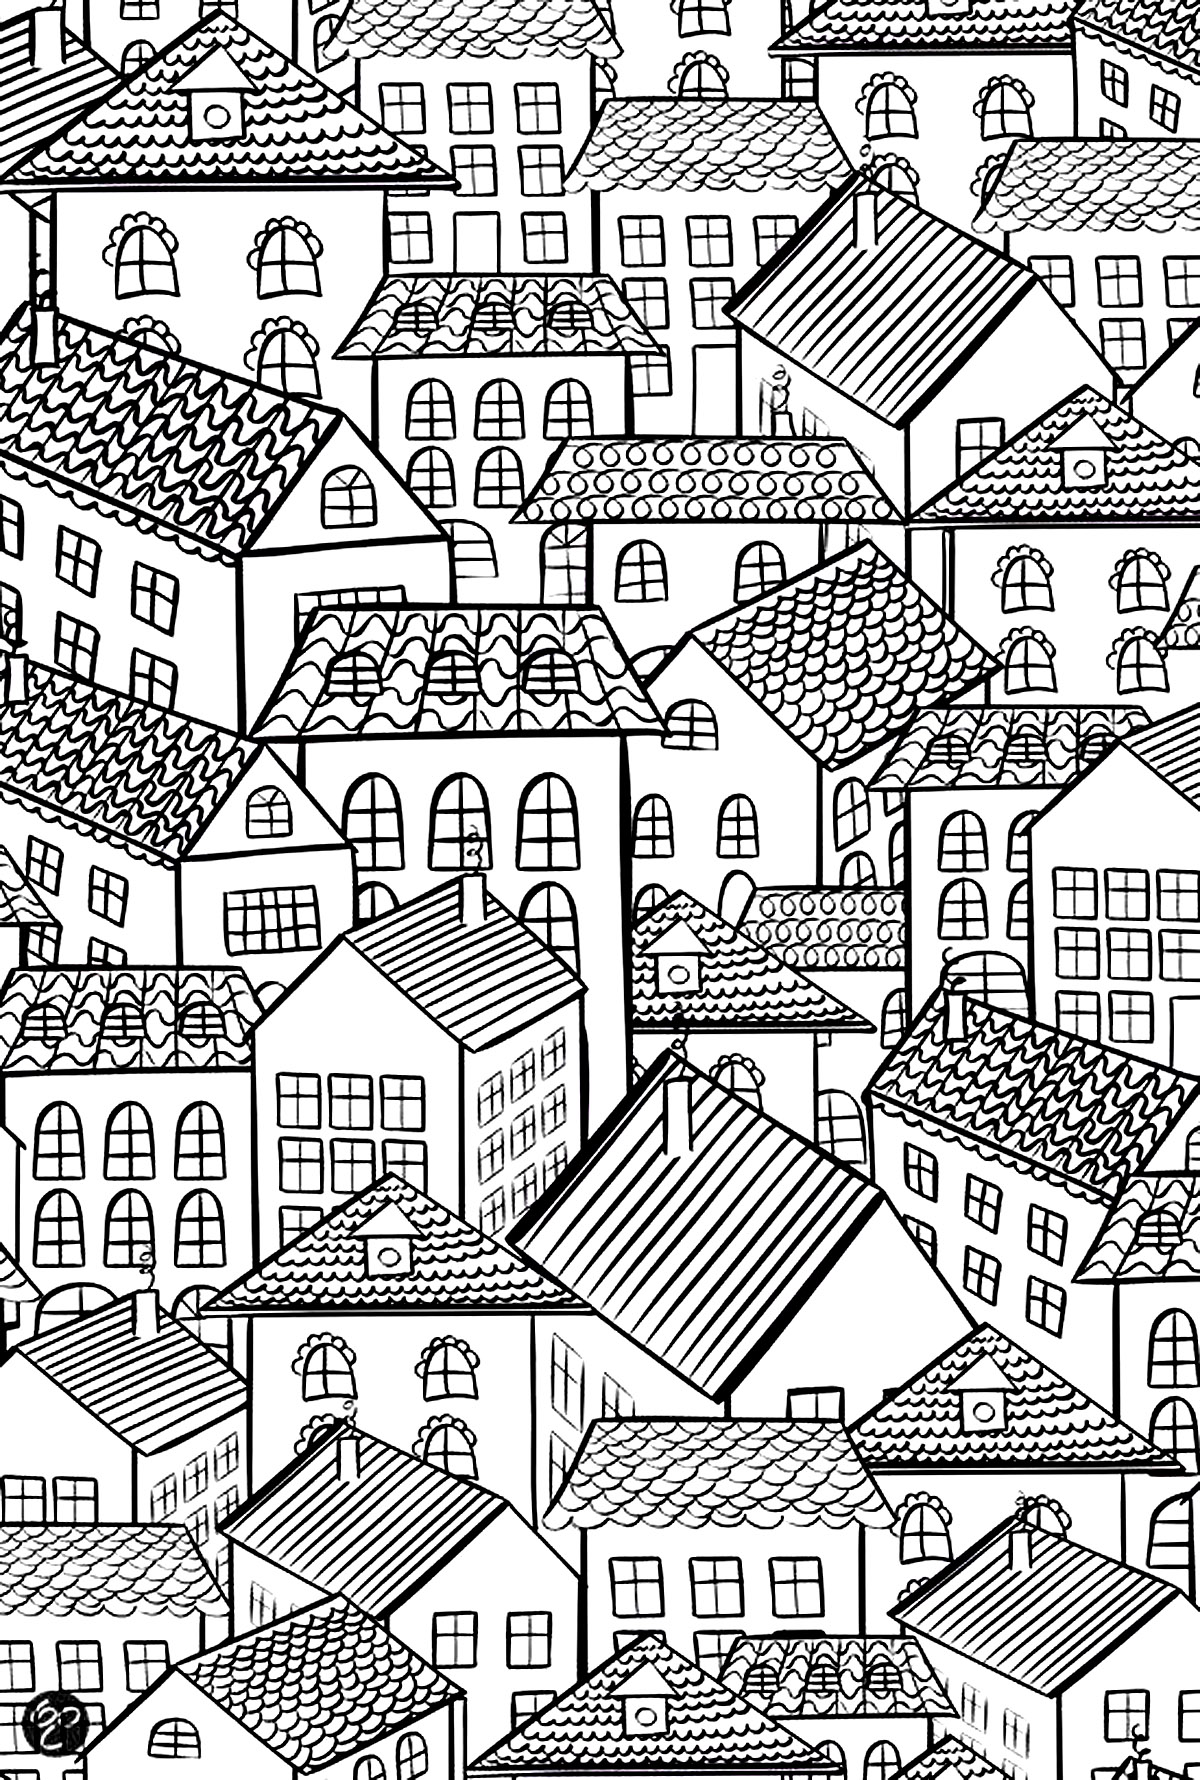 Architecture Village Roofs Architecture Adult Coloring Pages